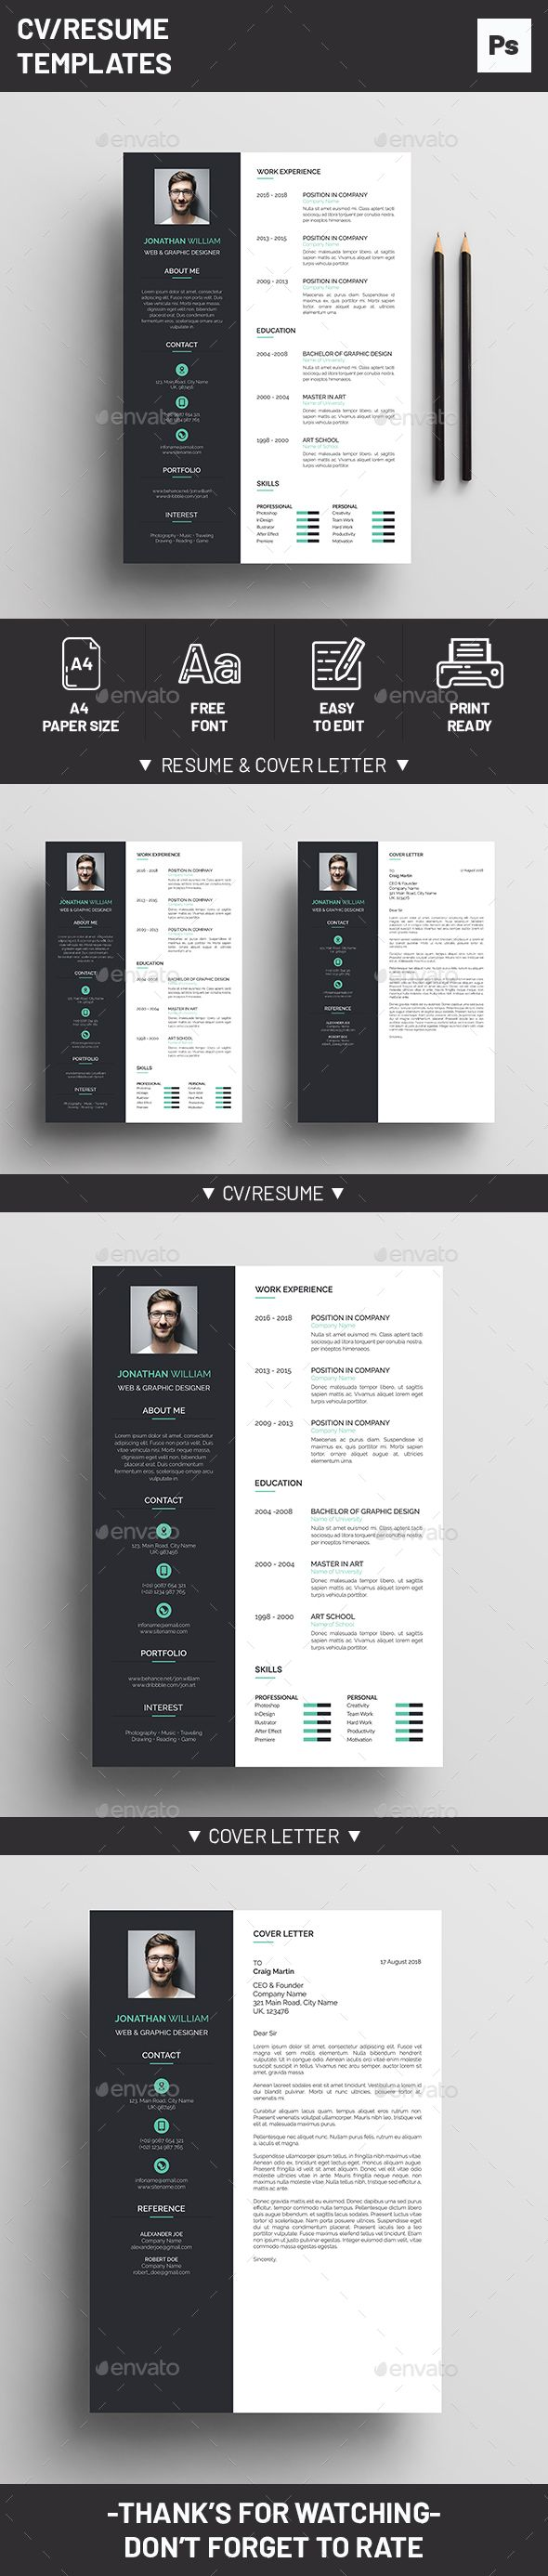 Resume Templates  Resume Design Template Psd Download Here